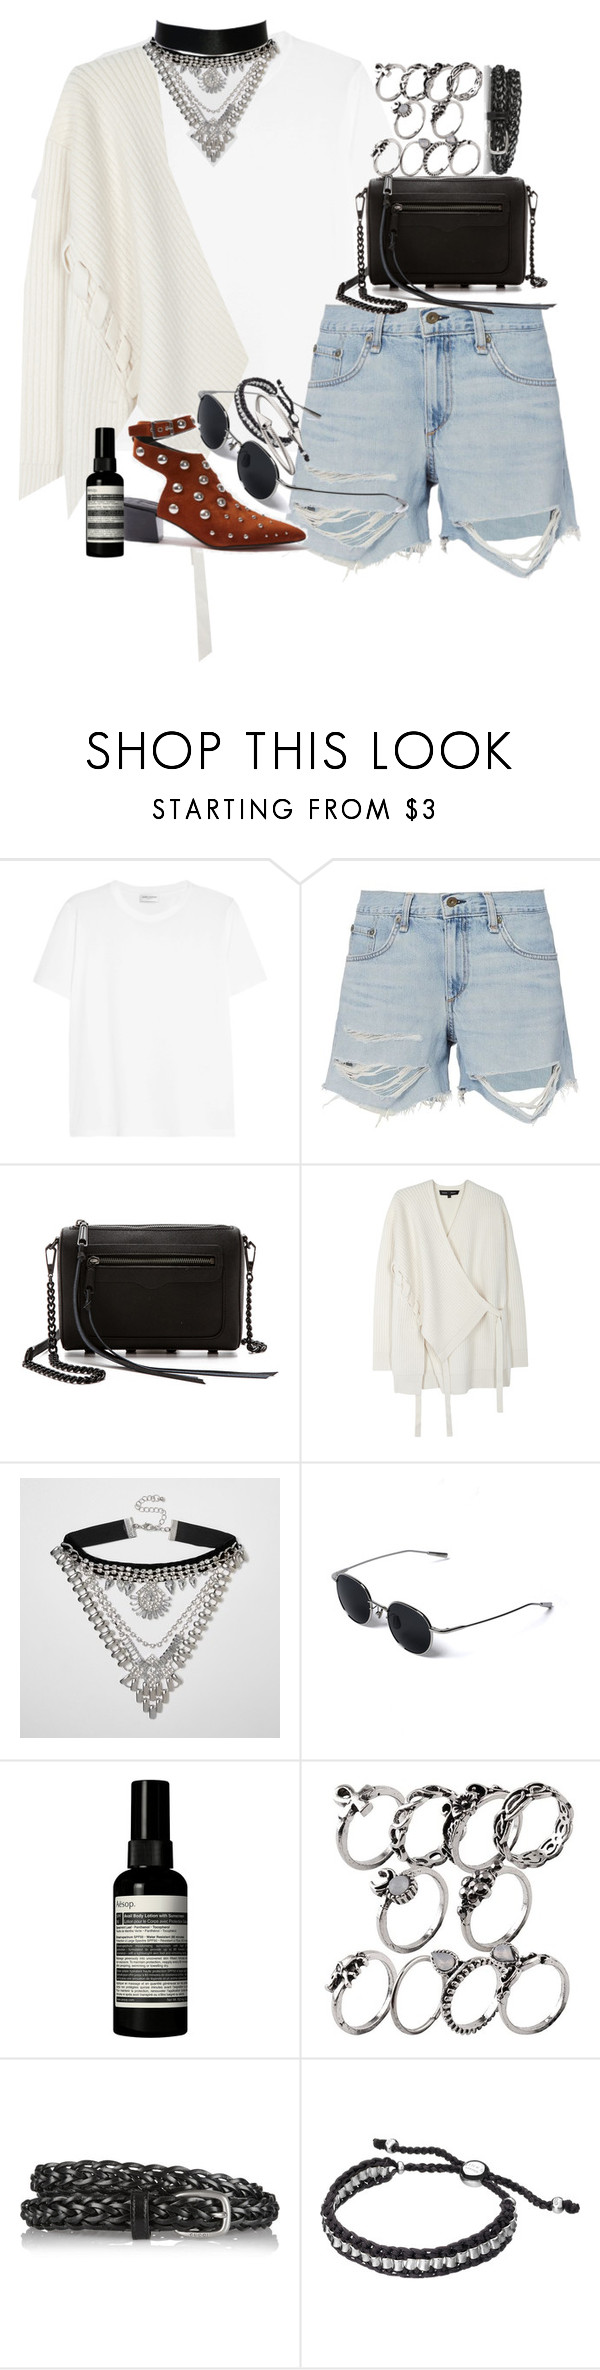 """Unbenannt #1114"" by flytotheunknown ❤ liked on Polyvore featuring Yves Saint Laurent, rag & bone, Rebecca Minkoff, Proenza Schouler, River Island, Aesop, Gucci, Links of London and Jules Smith"